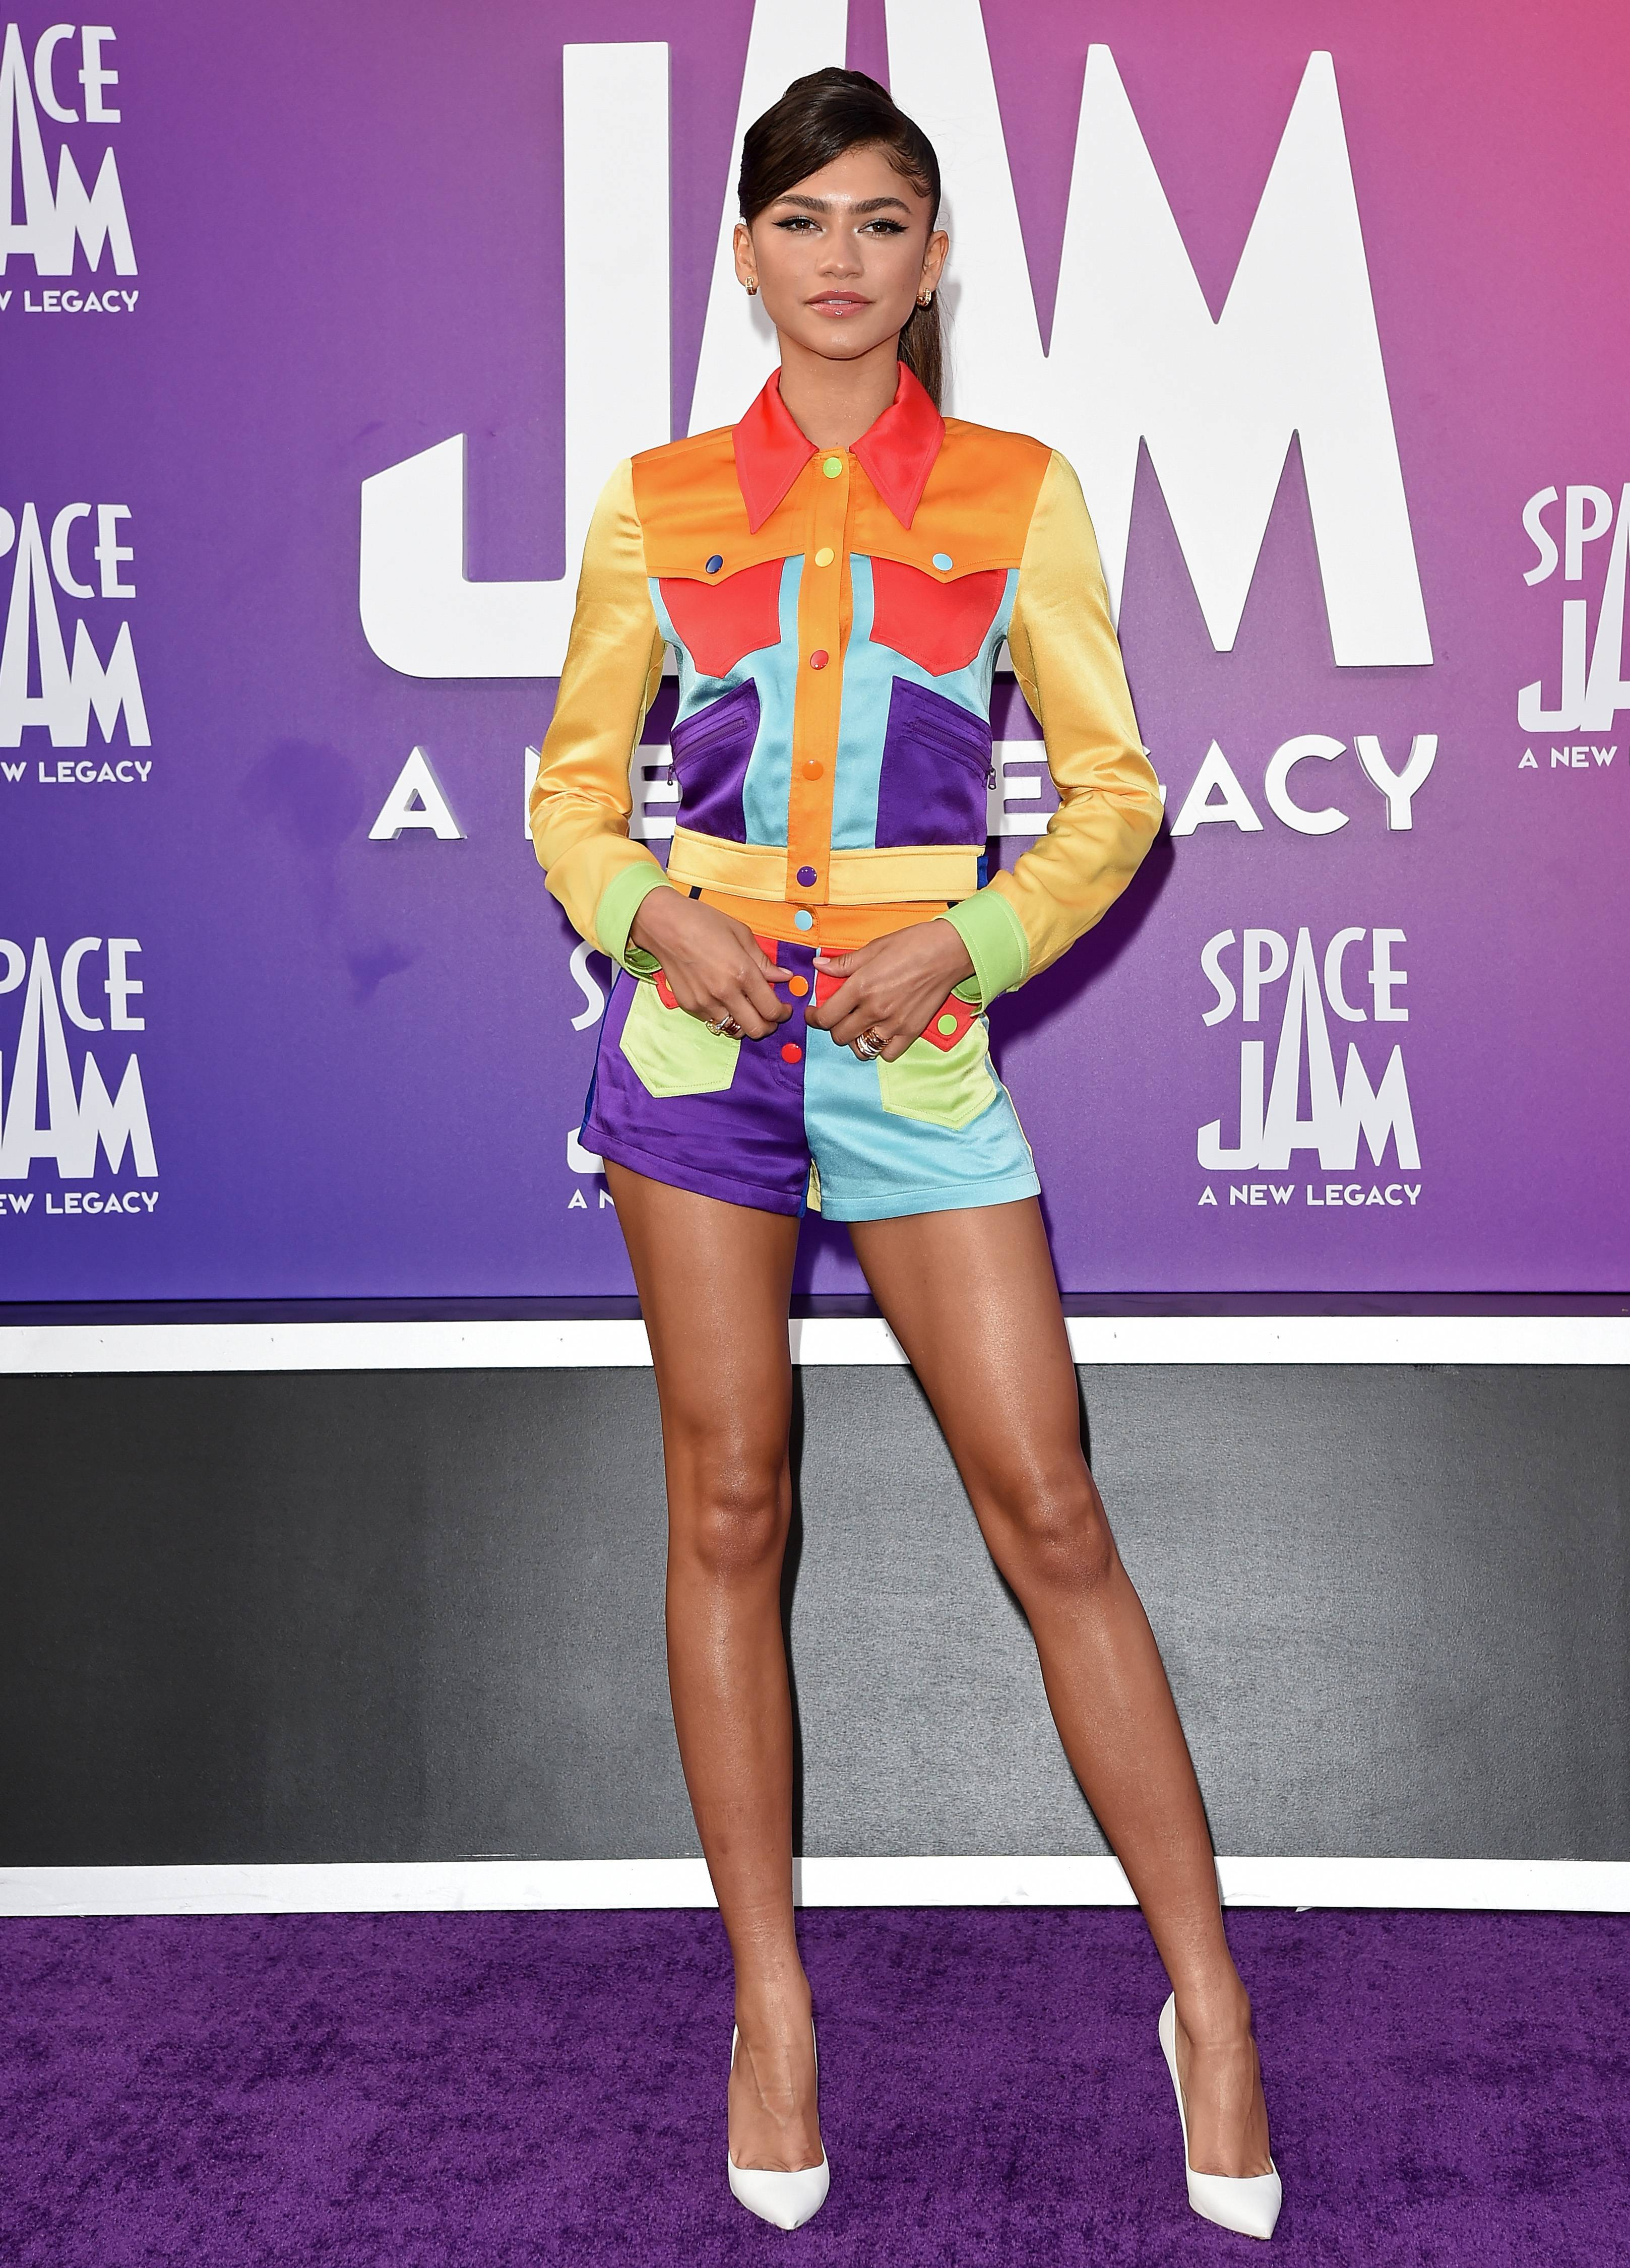 """Lola Bunny - Zendaya is a whole mood. The young actress attended the premier of """" Space Jam: The New Legacy"""" in which she plays the iconic Lola Bunny. Zendaya channeled the character on the red carpet rocking a fun, colorful shorts set. The look consisted of a colorblocked jacket and matching shorts from Moschino's Resort 22 collection. Zendaya accessorized with white Christian Louboutin pumps, as well as gold huggie hoop earrings and stacked rings by Bulgari. Though she didn't wear it for the entirety of the red carpet, she also had in tow a blue face mask with a sparkly basketball on it, which was actually made by her mom, Claire Stoermer. """"Mask courtesy of my mama,"""" she wrote on Instagram Stories.We are loving her look!"""